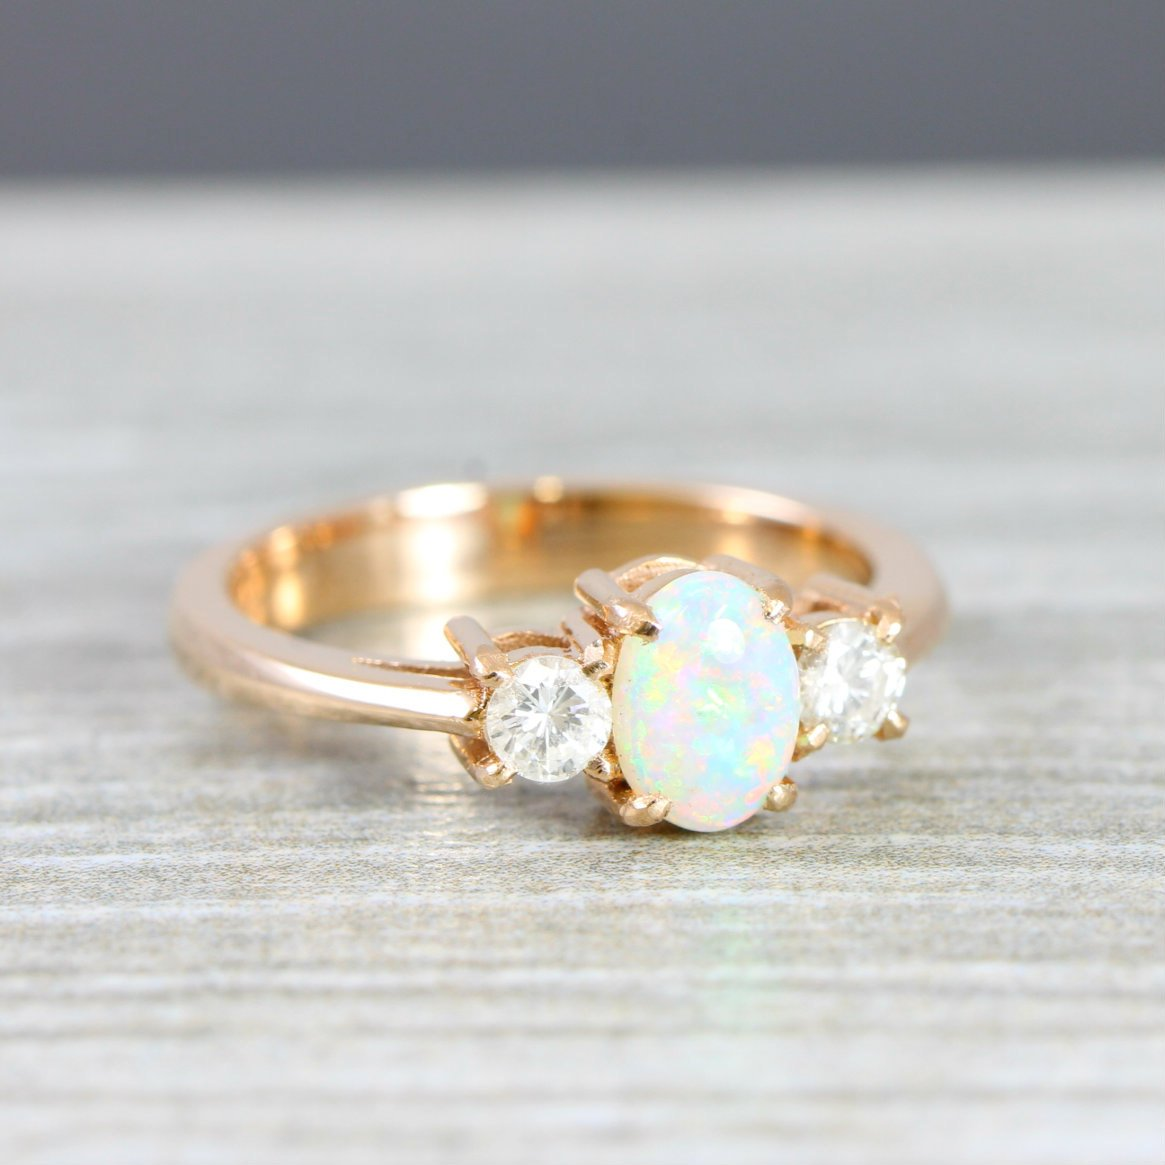 Rose Gold Opal And Diamond Engagement Ring In 14 Carat Gold For Her Handmade Ring Uk Aardvark Jewellery